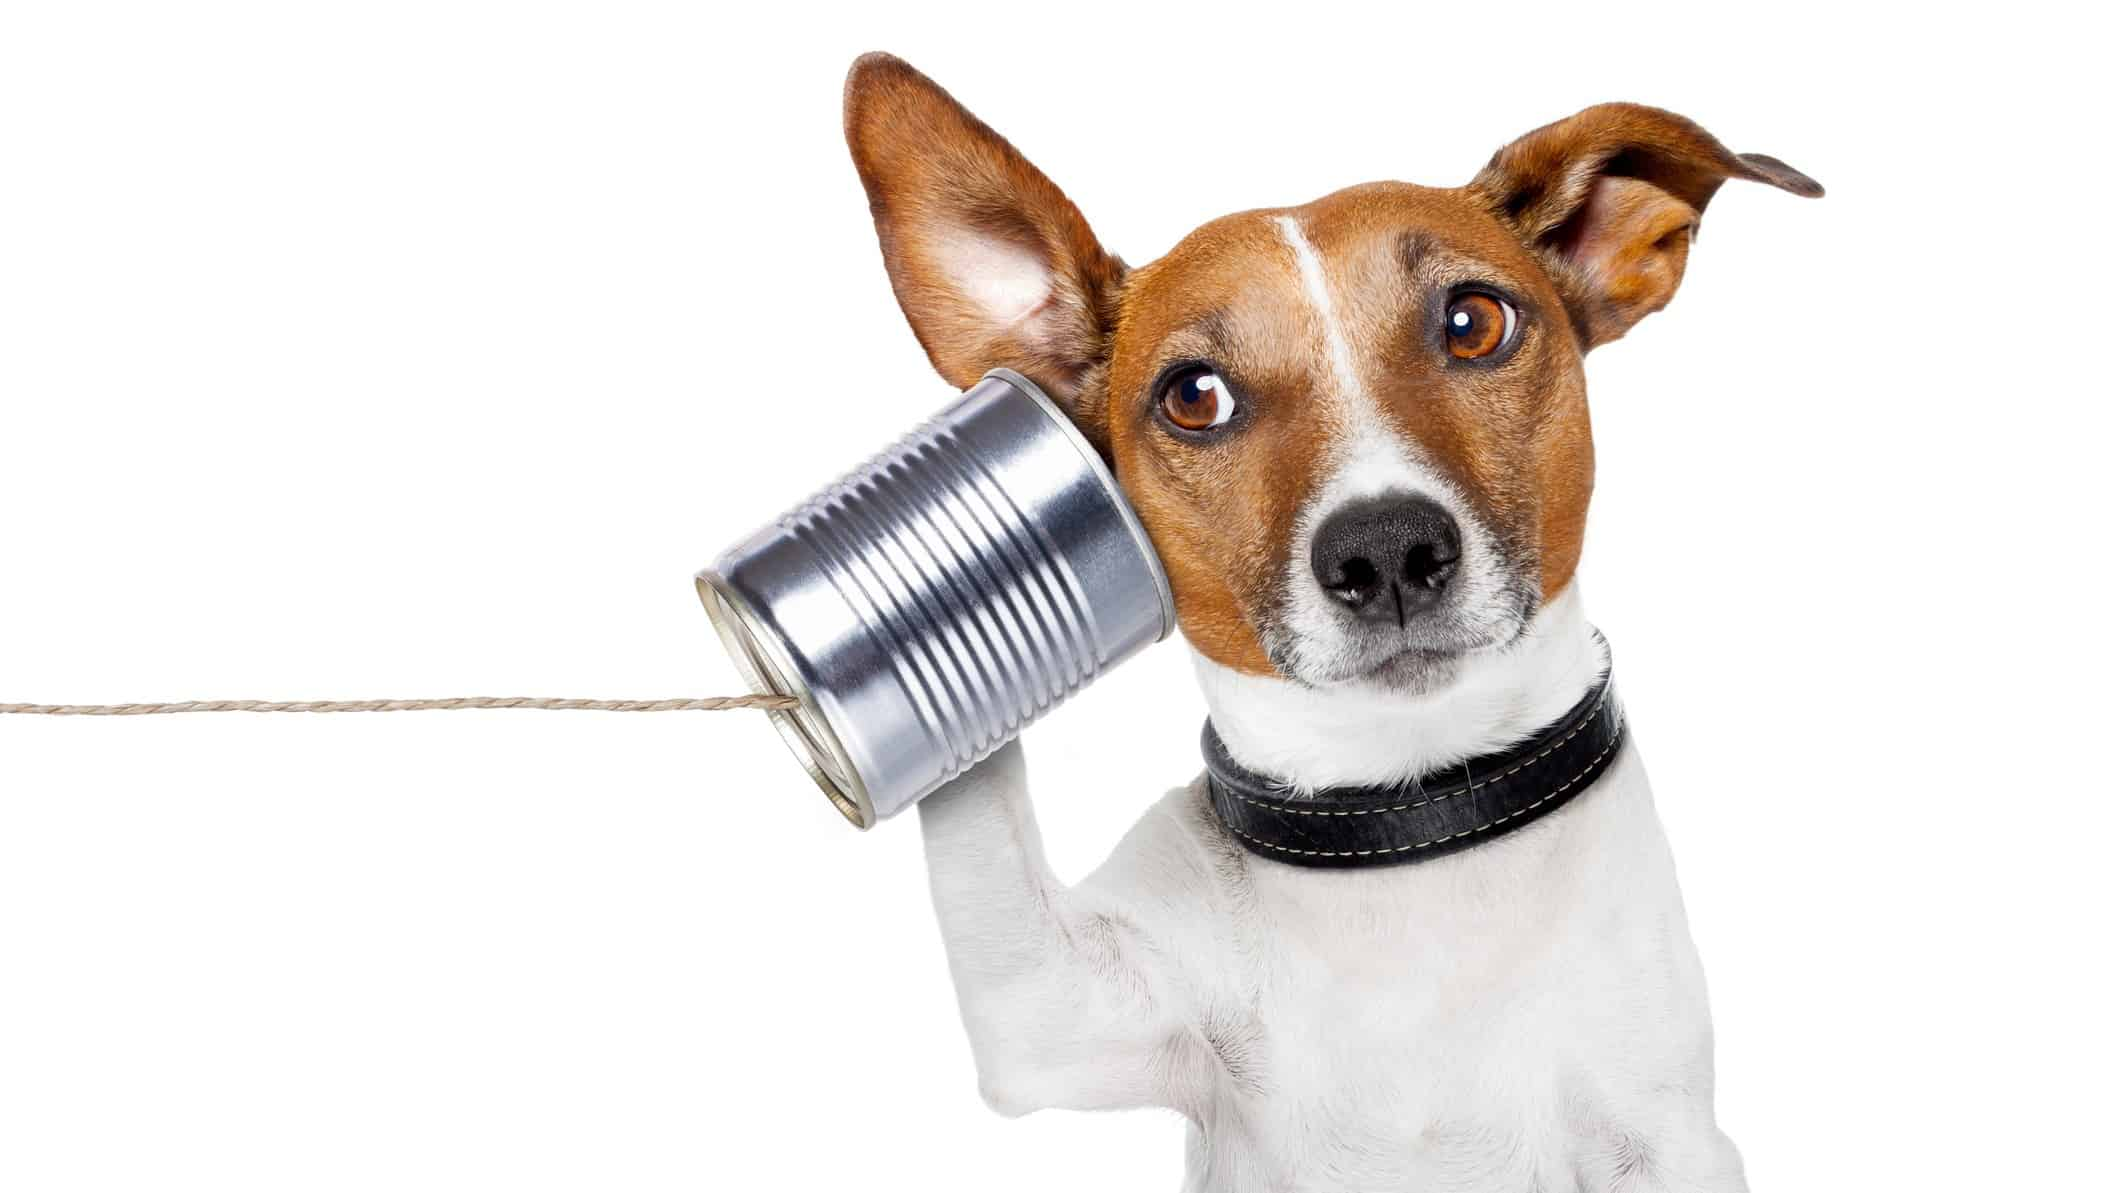 dog listening through tin can with string attached signifying listening regarding asx share demerger announcements